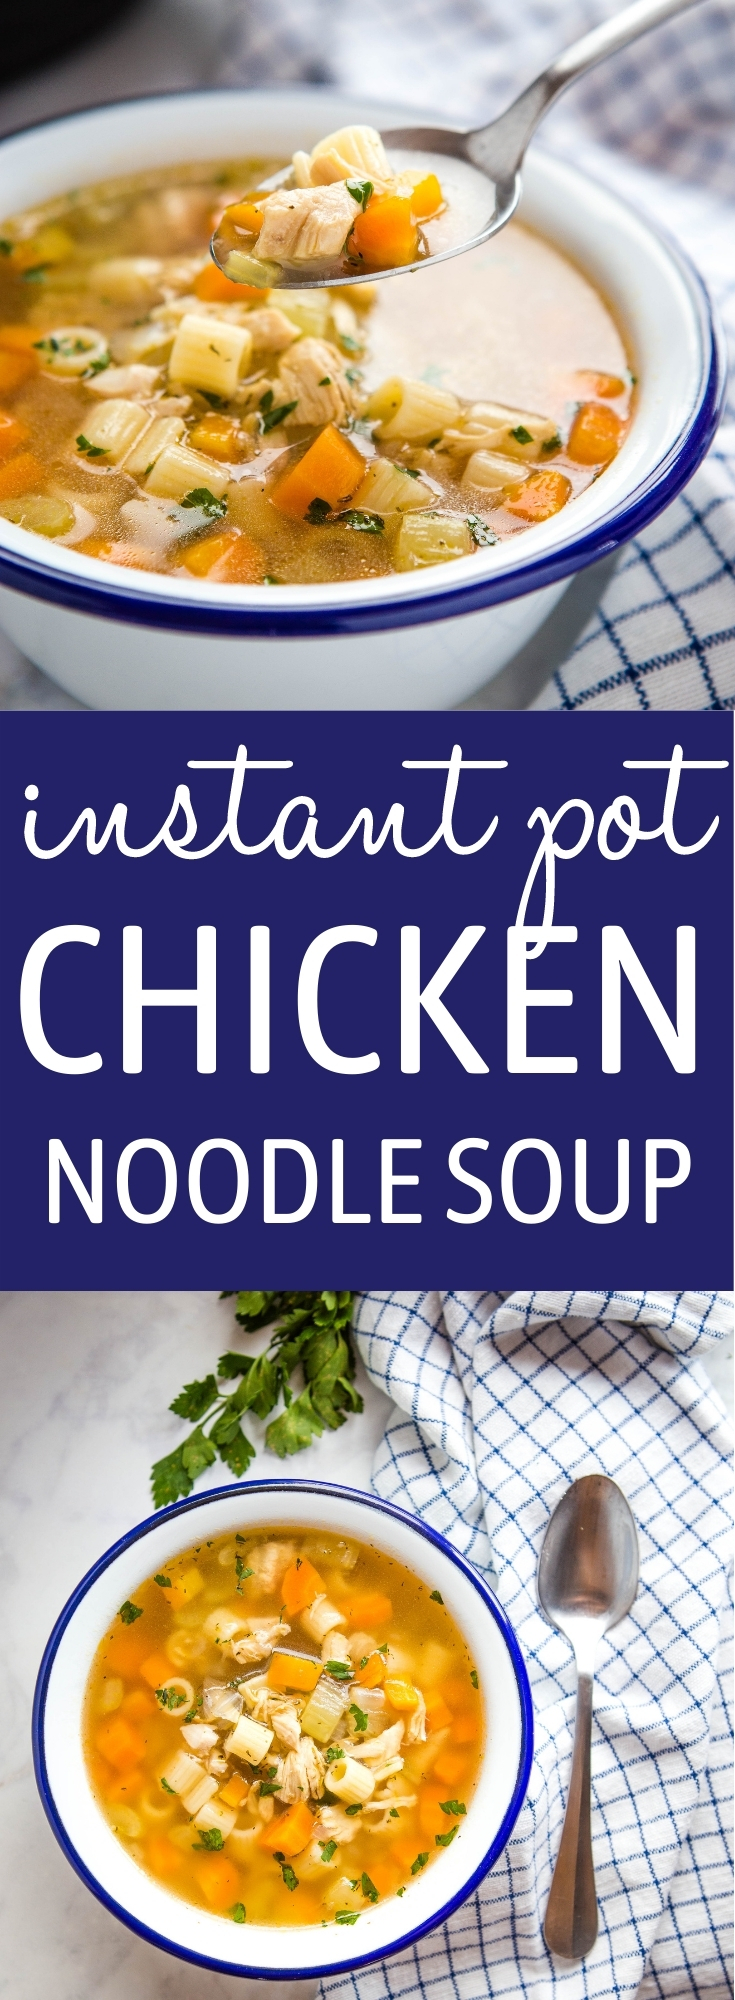 This Easy Instant Pot Chicken Noodle Soup is healthy & wholesome, packed with veggies & chicken breast, and it's so easy to make in the Instant Pot in about 30 minutes! Recipe from thebusybaker.ca! #instantpot #chickennoodlesoup #sickday #snowday #winter #soup #homemade #pressurecooker #fast #dinner #easymeal via @busybakerblog